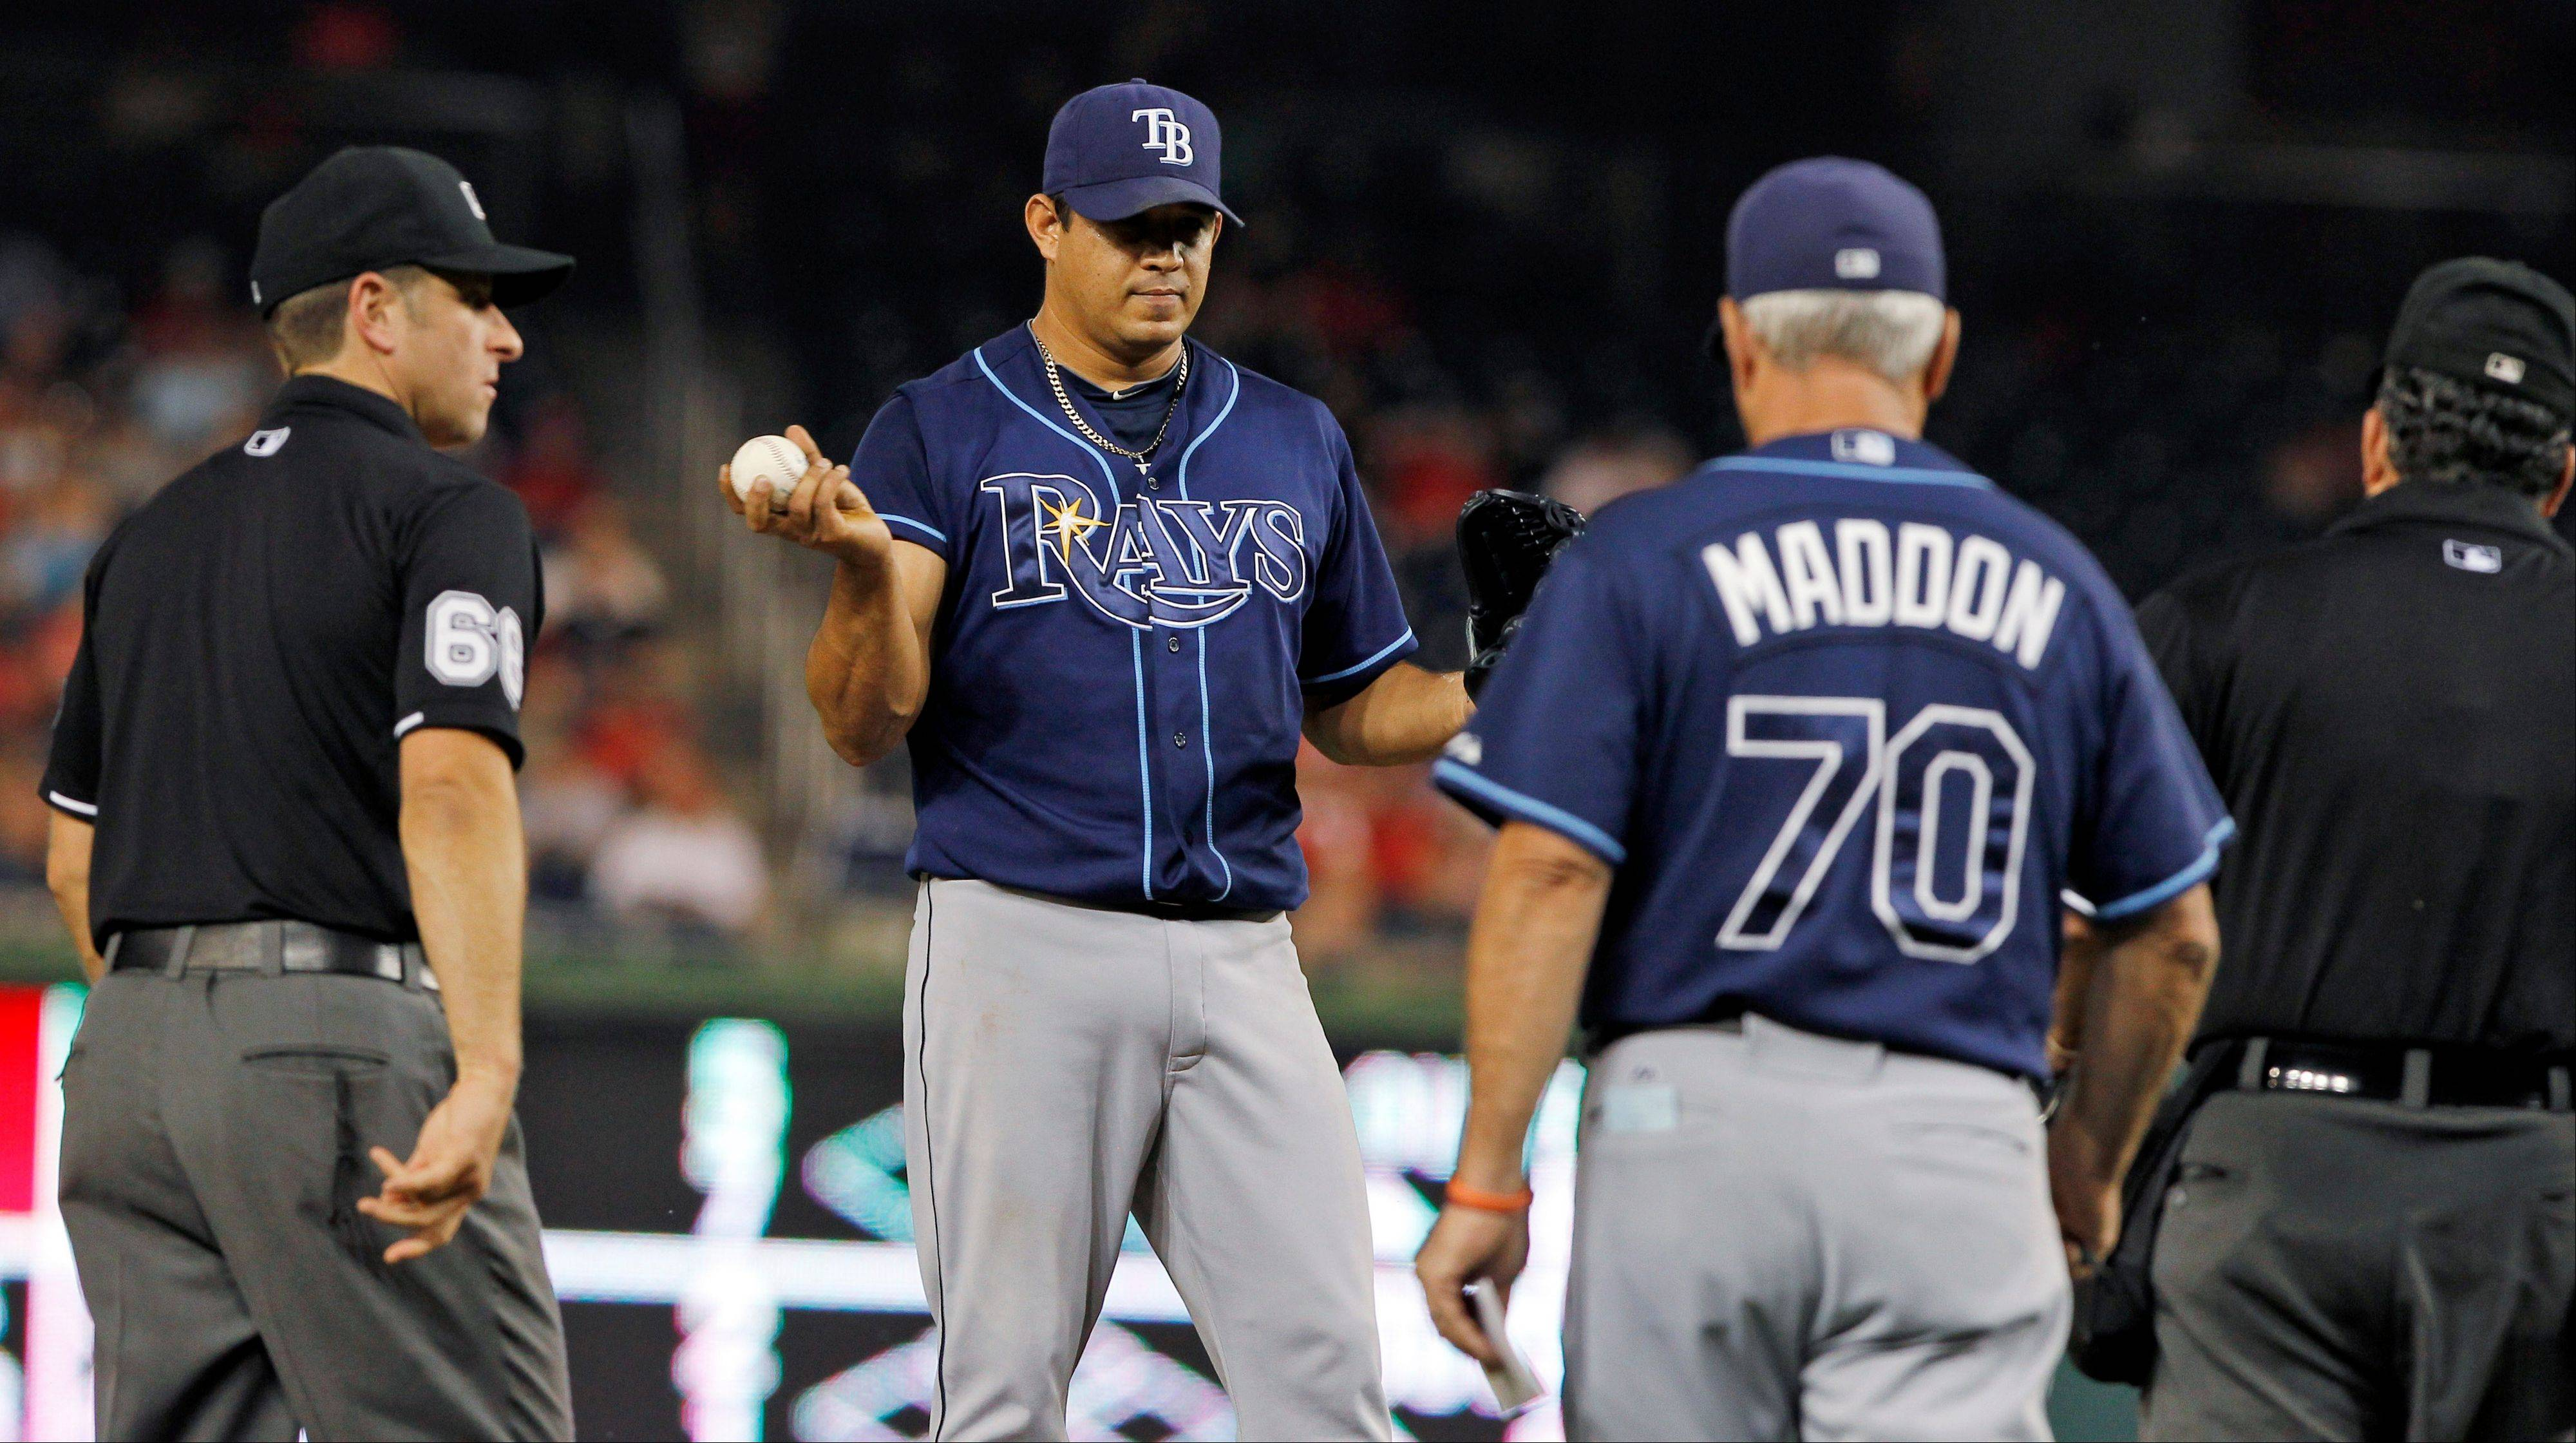 Tampa Bay Rays manager Joe Maddon heads to the mound to talk with relief pitcher Joel Peralta and the umpires Tuesday during the eighth inning against the Washington Nationals at Nationals Park in Washington. Peralta was ejected without throwing a pitch after the umpires found a foreign substance on his glove.